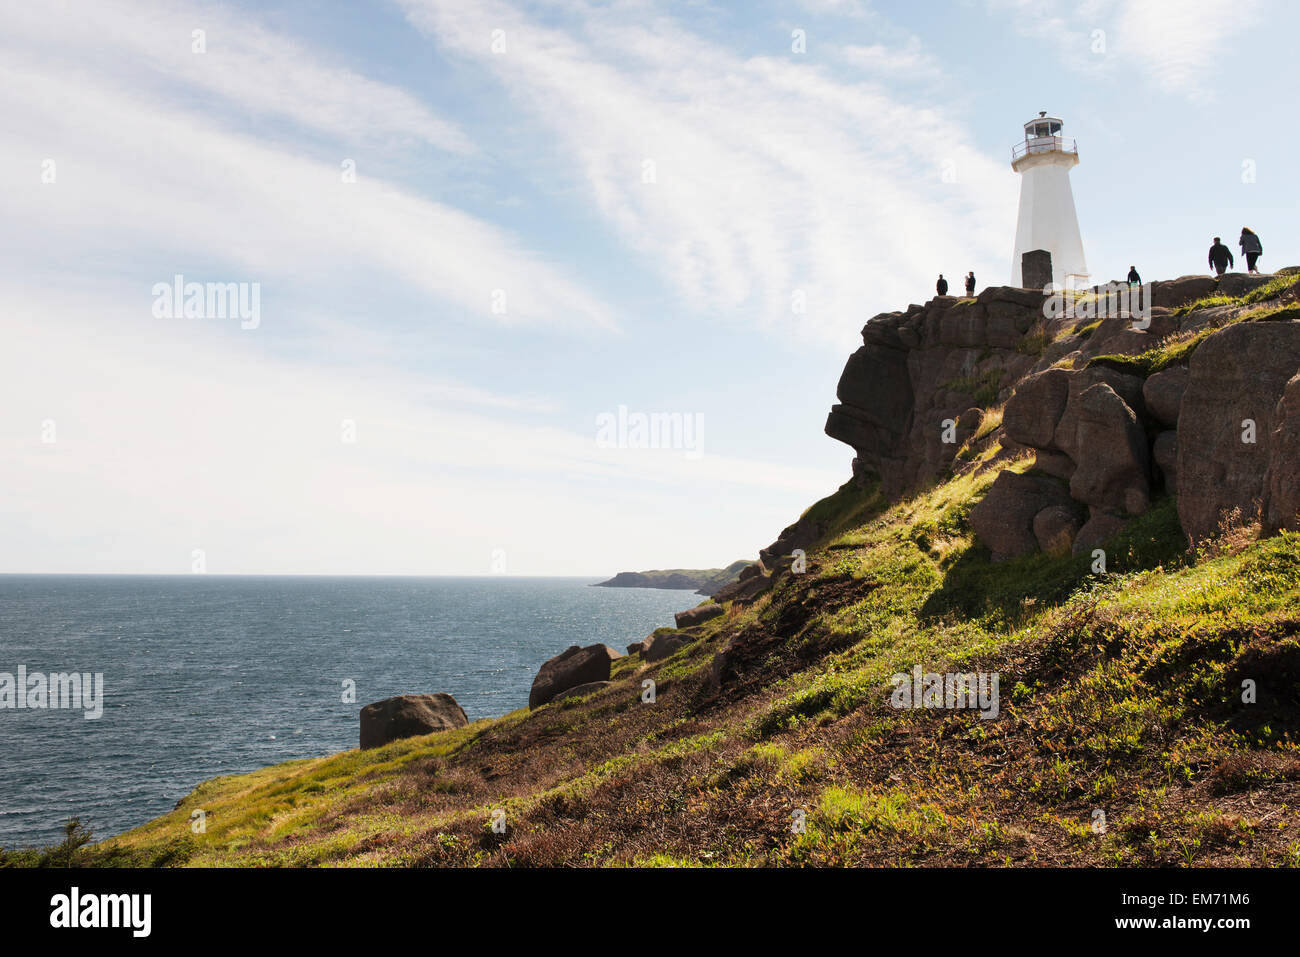 Tourists at a lighthouse on Cape Spear; St. John's, Newfoundland and Labrador, Canada - Stock Image